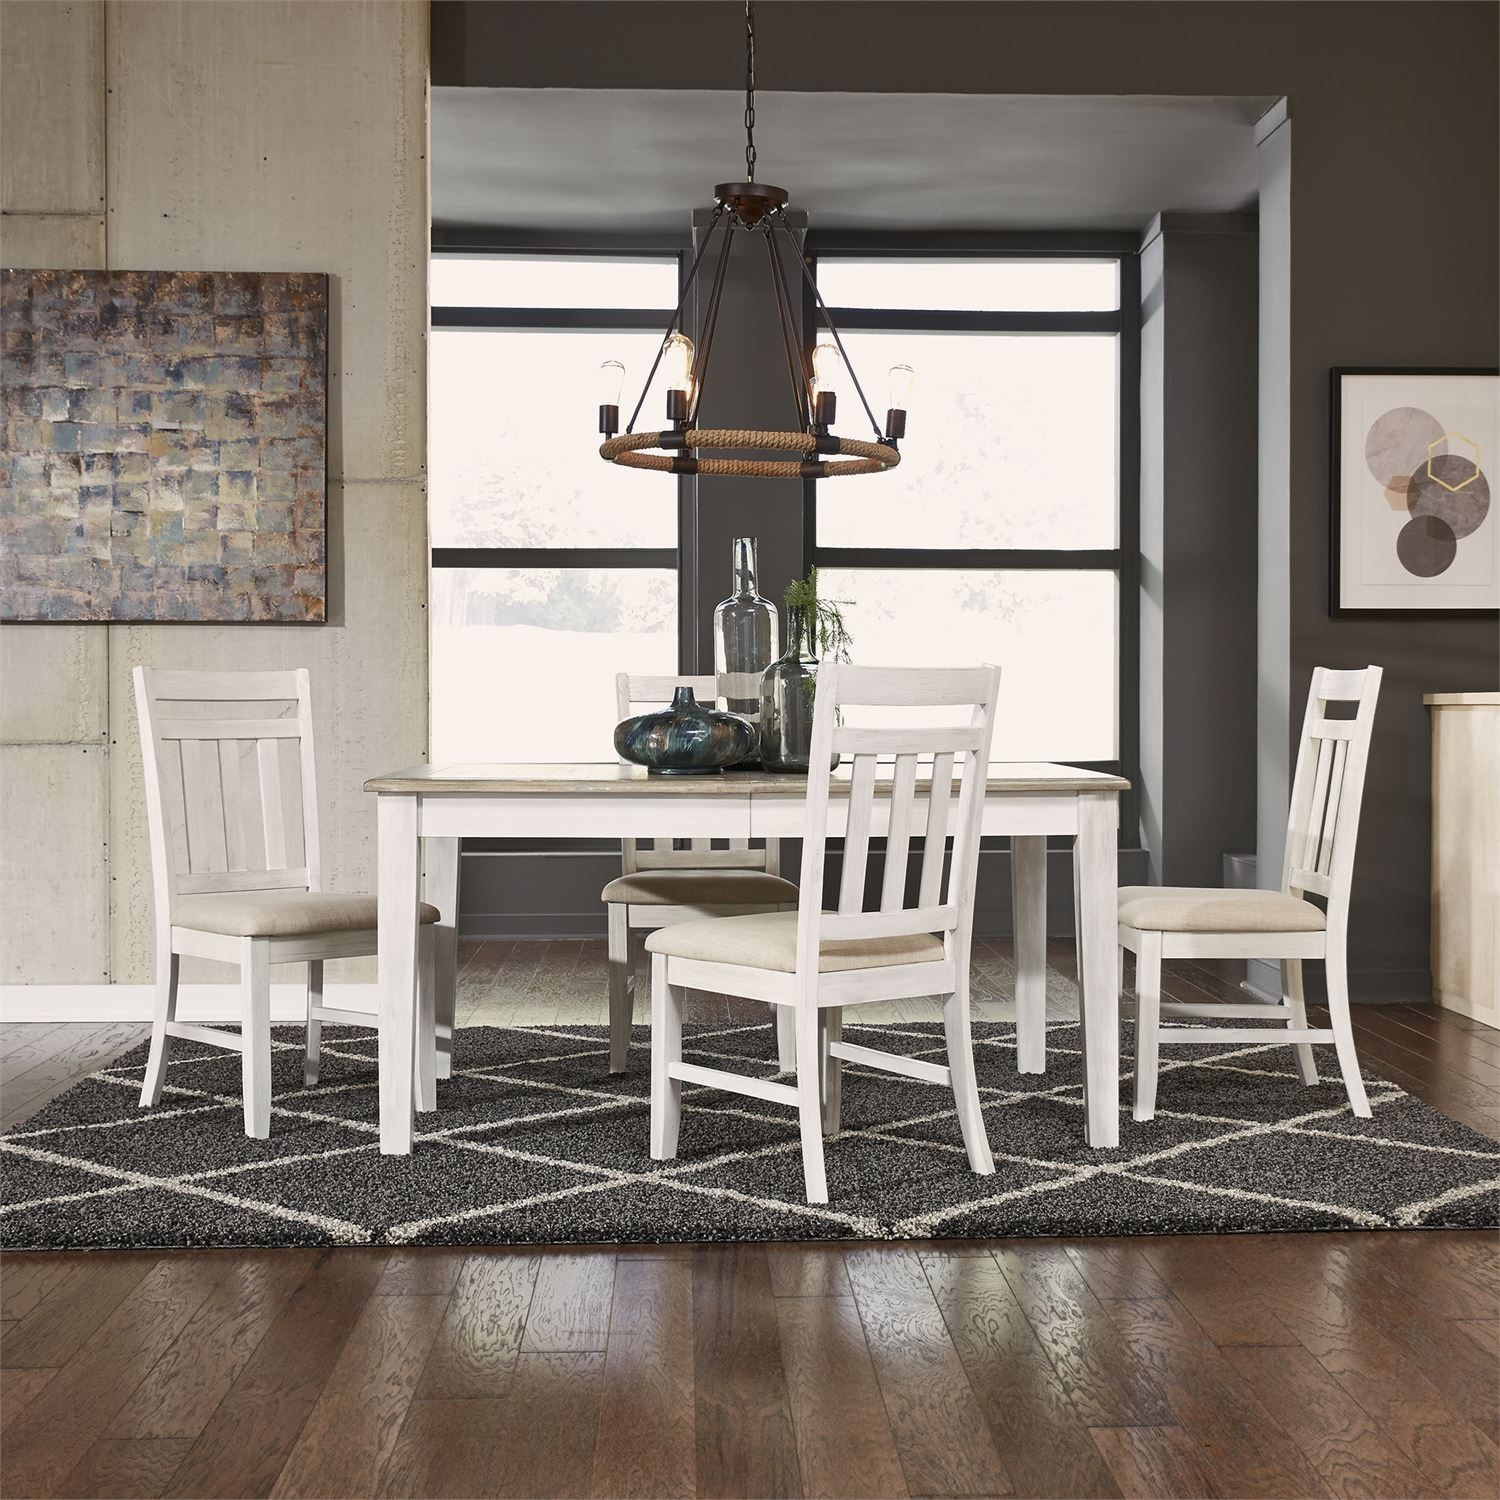 Summerville 5 Piece Rectangular Table Set by Liberty Furniture at Northeast Factory Direct